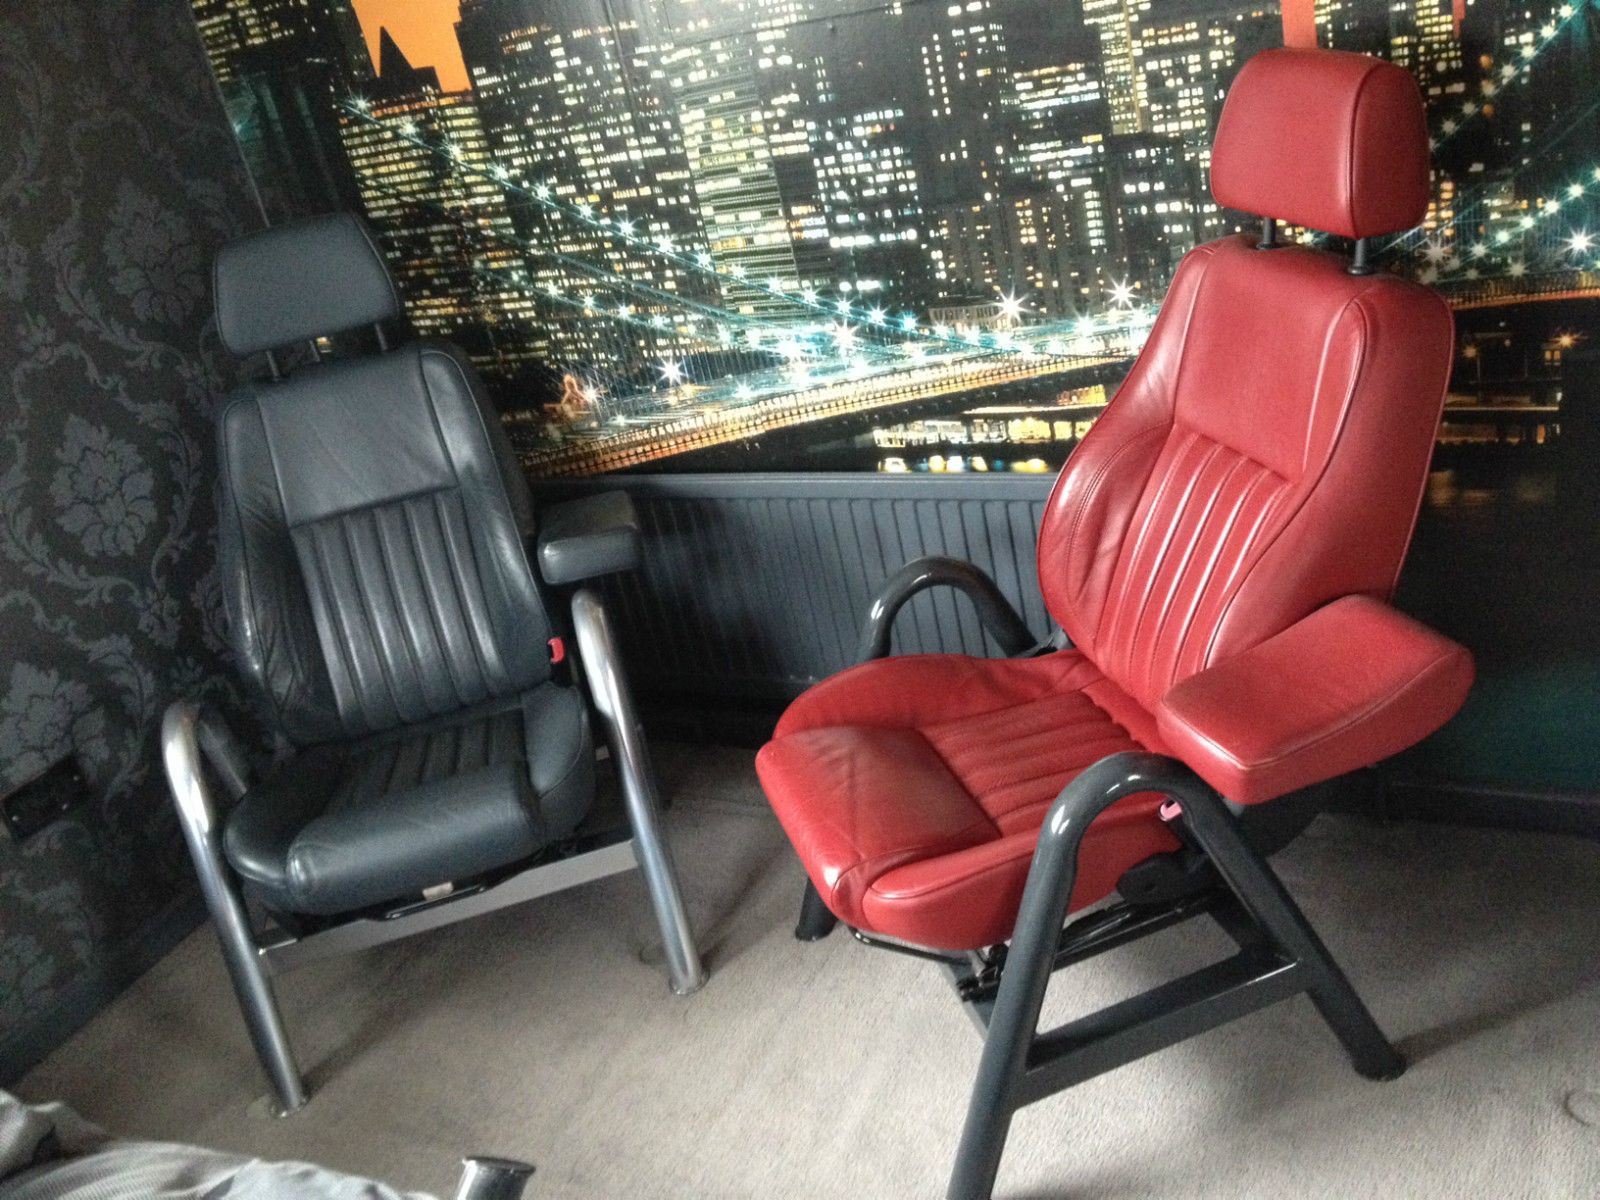 alfa romeo top gear car seats chairs momo leather classic car best available top gear garage. Black Bedroom Furniture Sets. Home Design Ideas